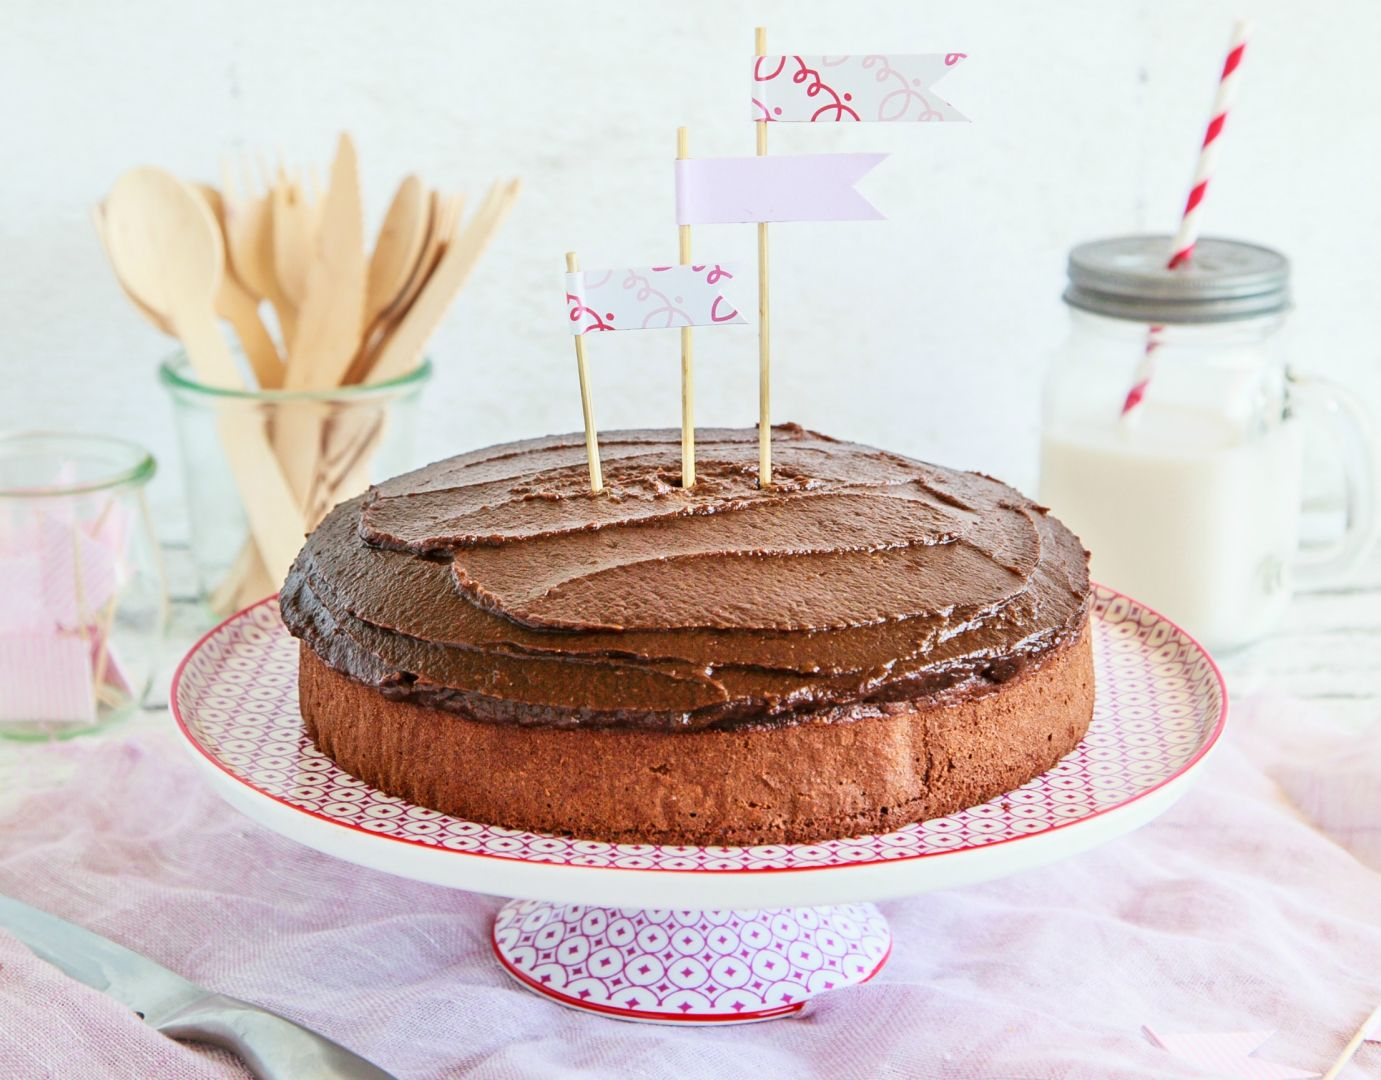 Healthy Low Fat Birthday Cake Recipes: Our Top Ten Healthy Birthday Cakes